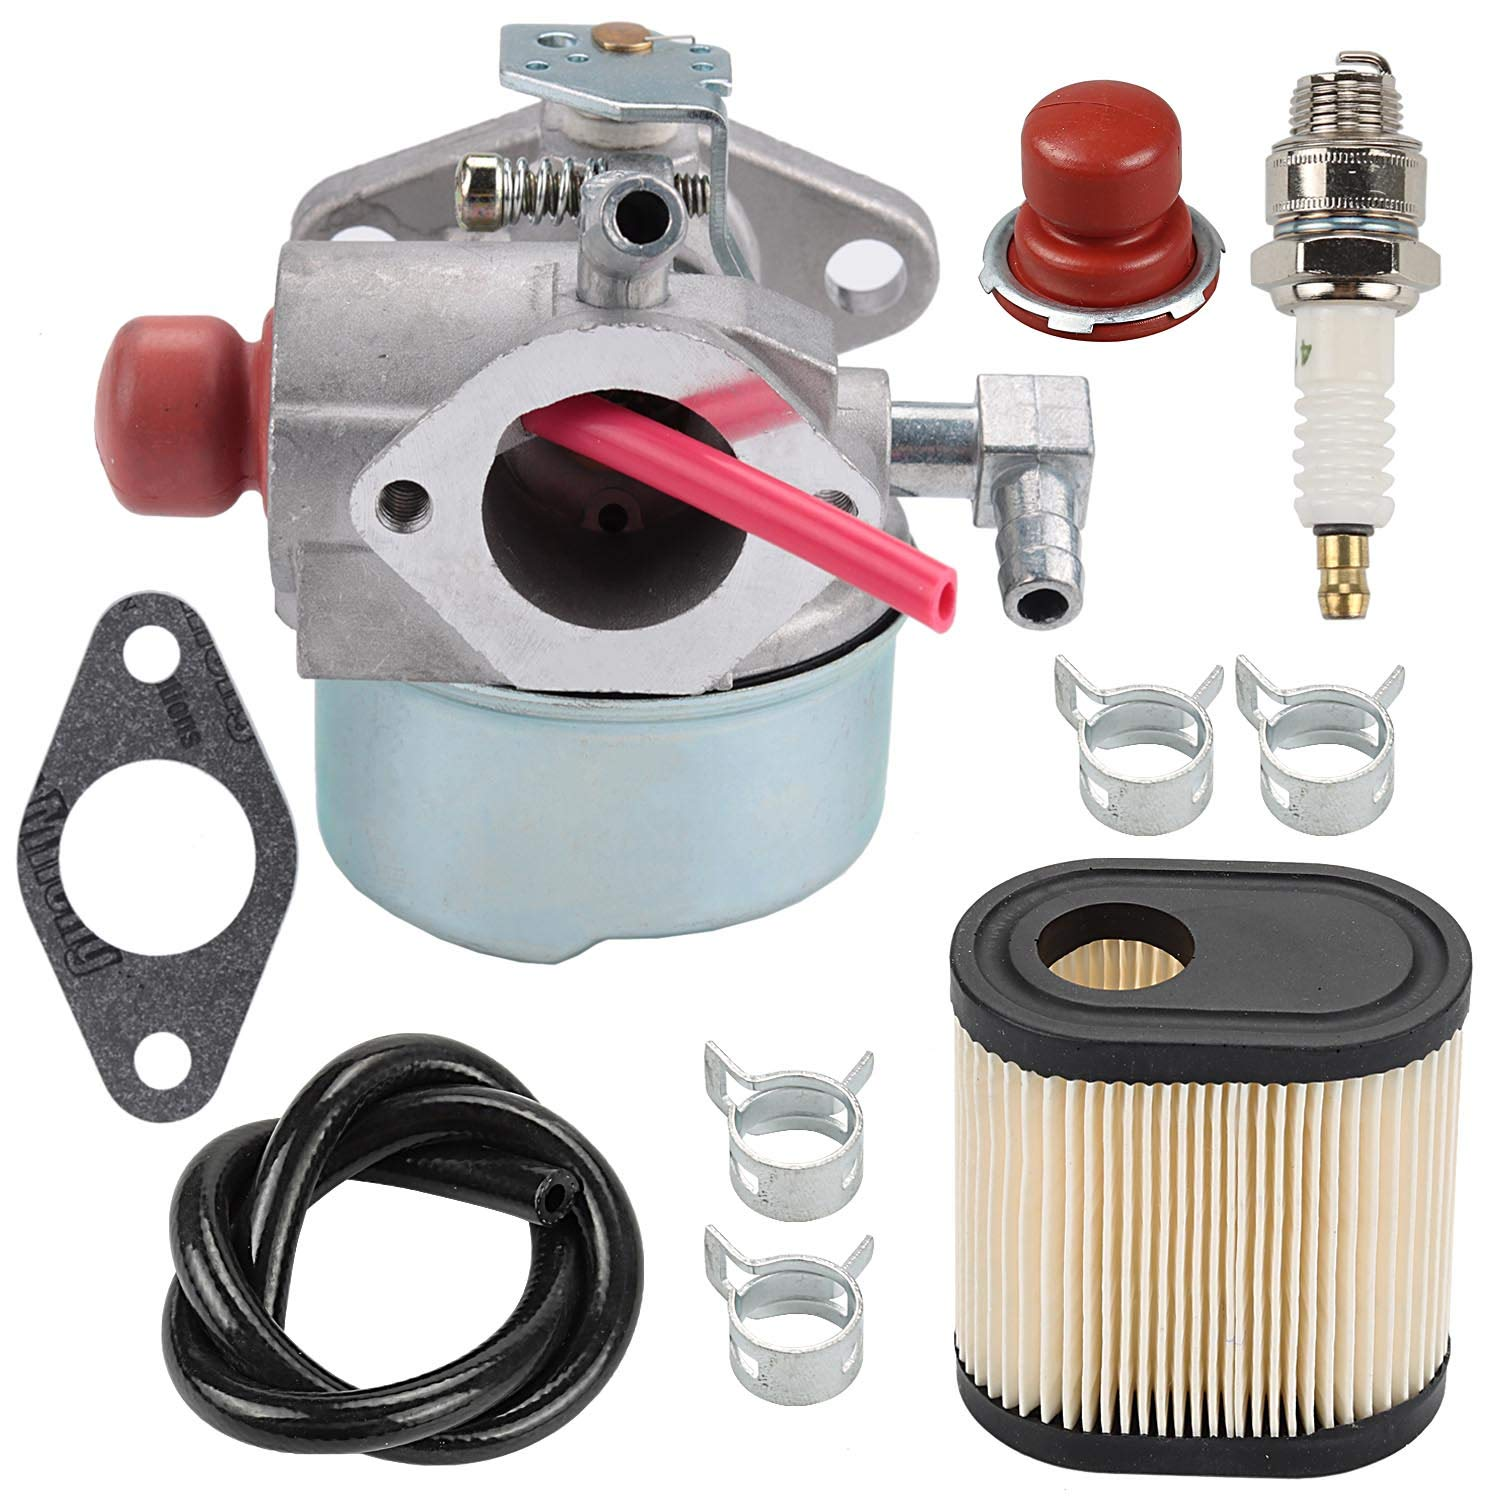 Wellsking 640350 640303 Carburetor + Air Filter Spark Plug for Toro 20016 20017 20018 Recycler Tecumseh LEV100 LEV105 LEV120 LV195EA LV195XA Lawn Mower